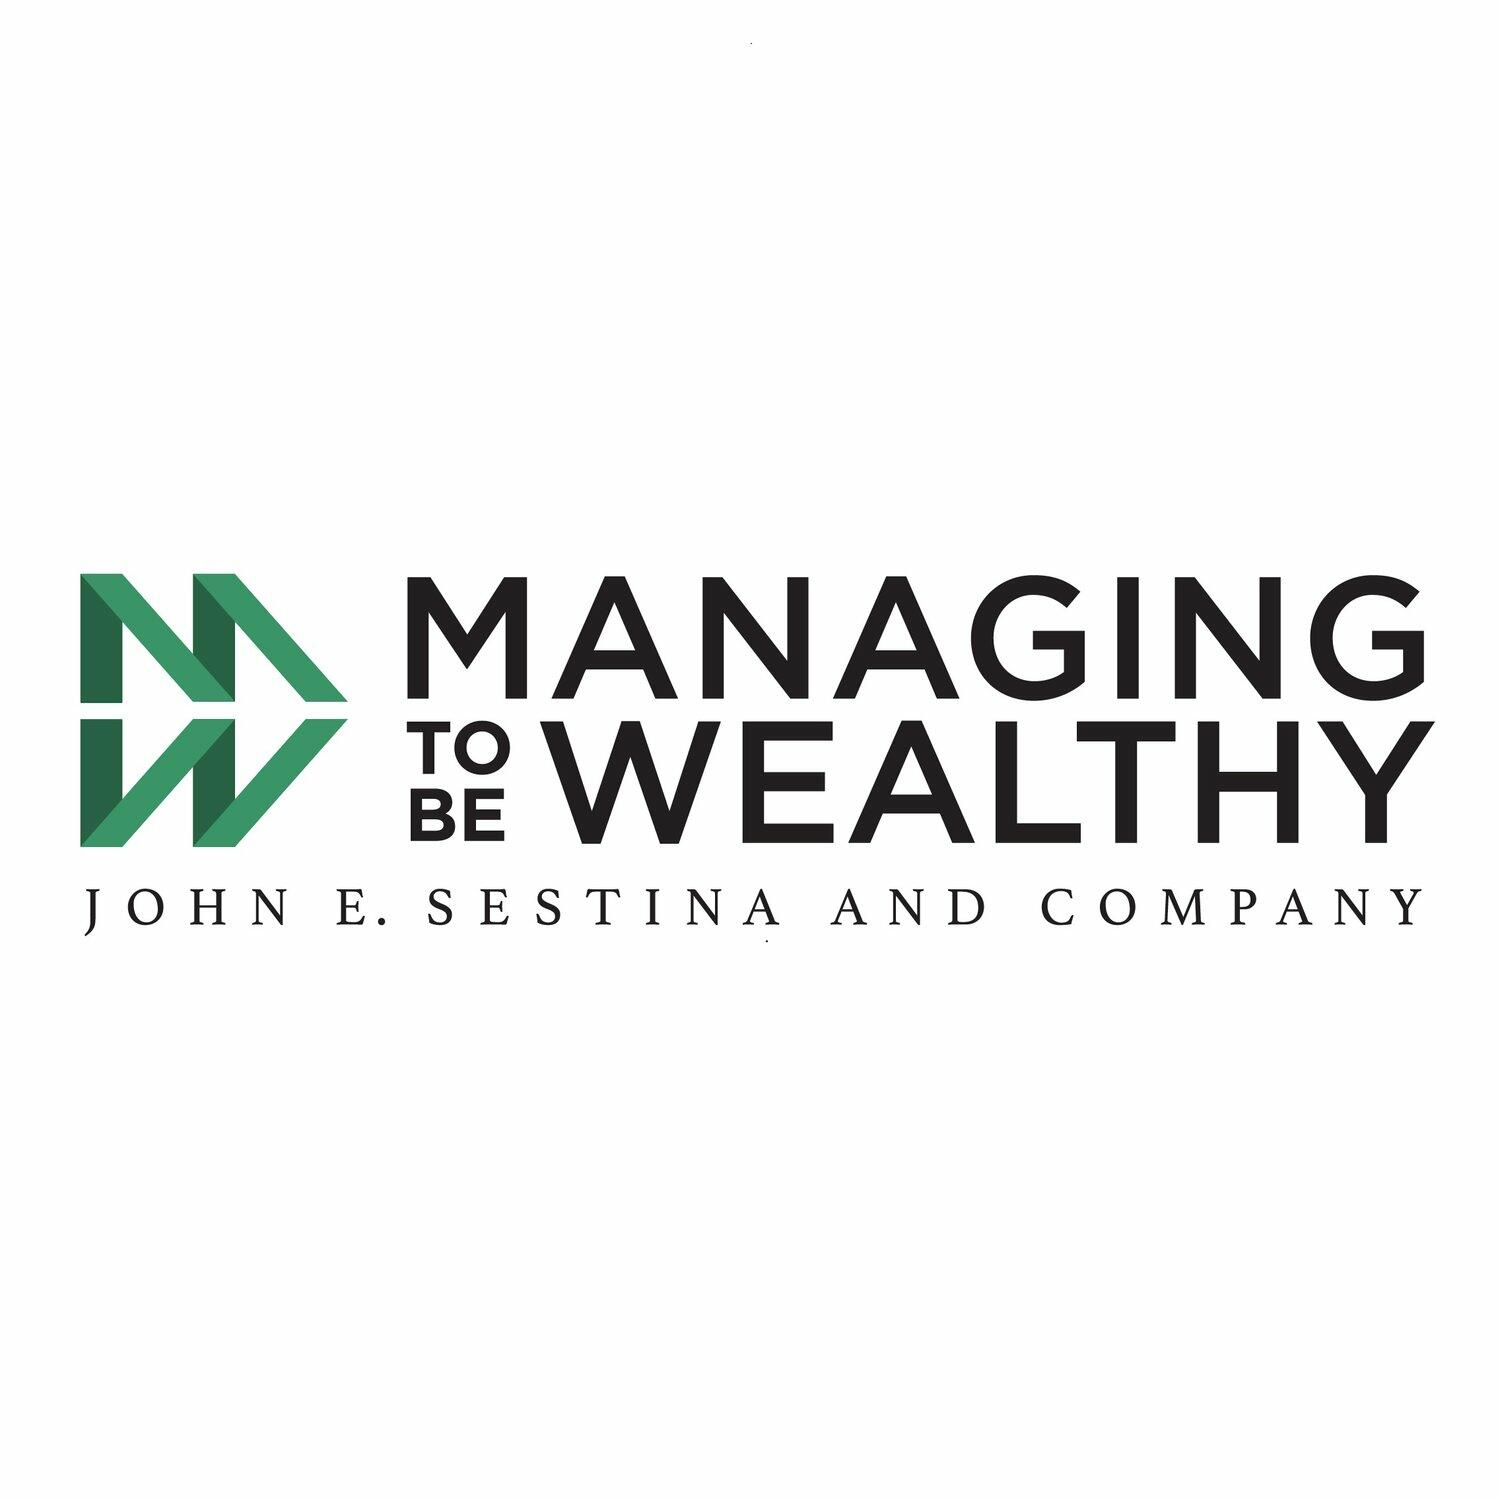 Managing To Be Wealthy